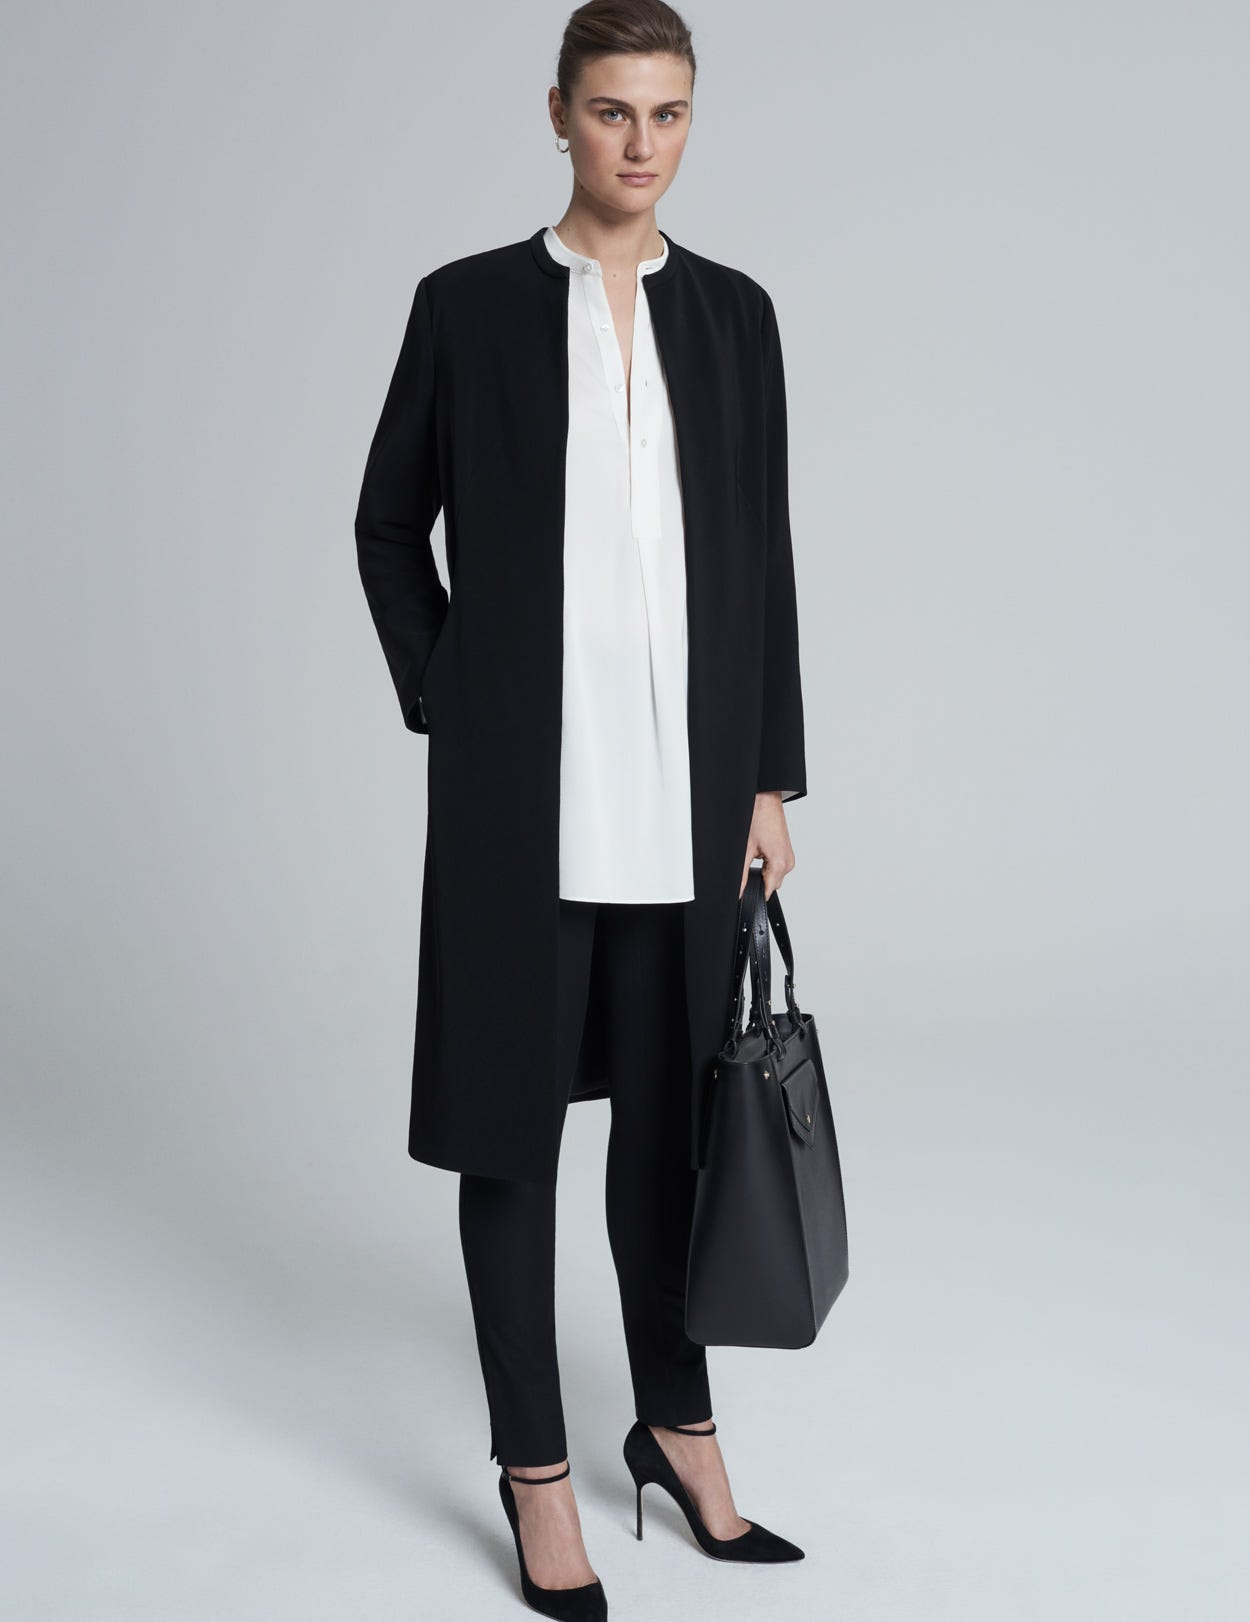 EDGE TO EDGE WOVEN COAT